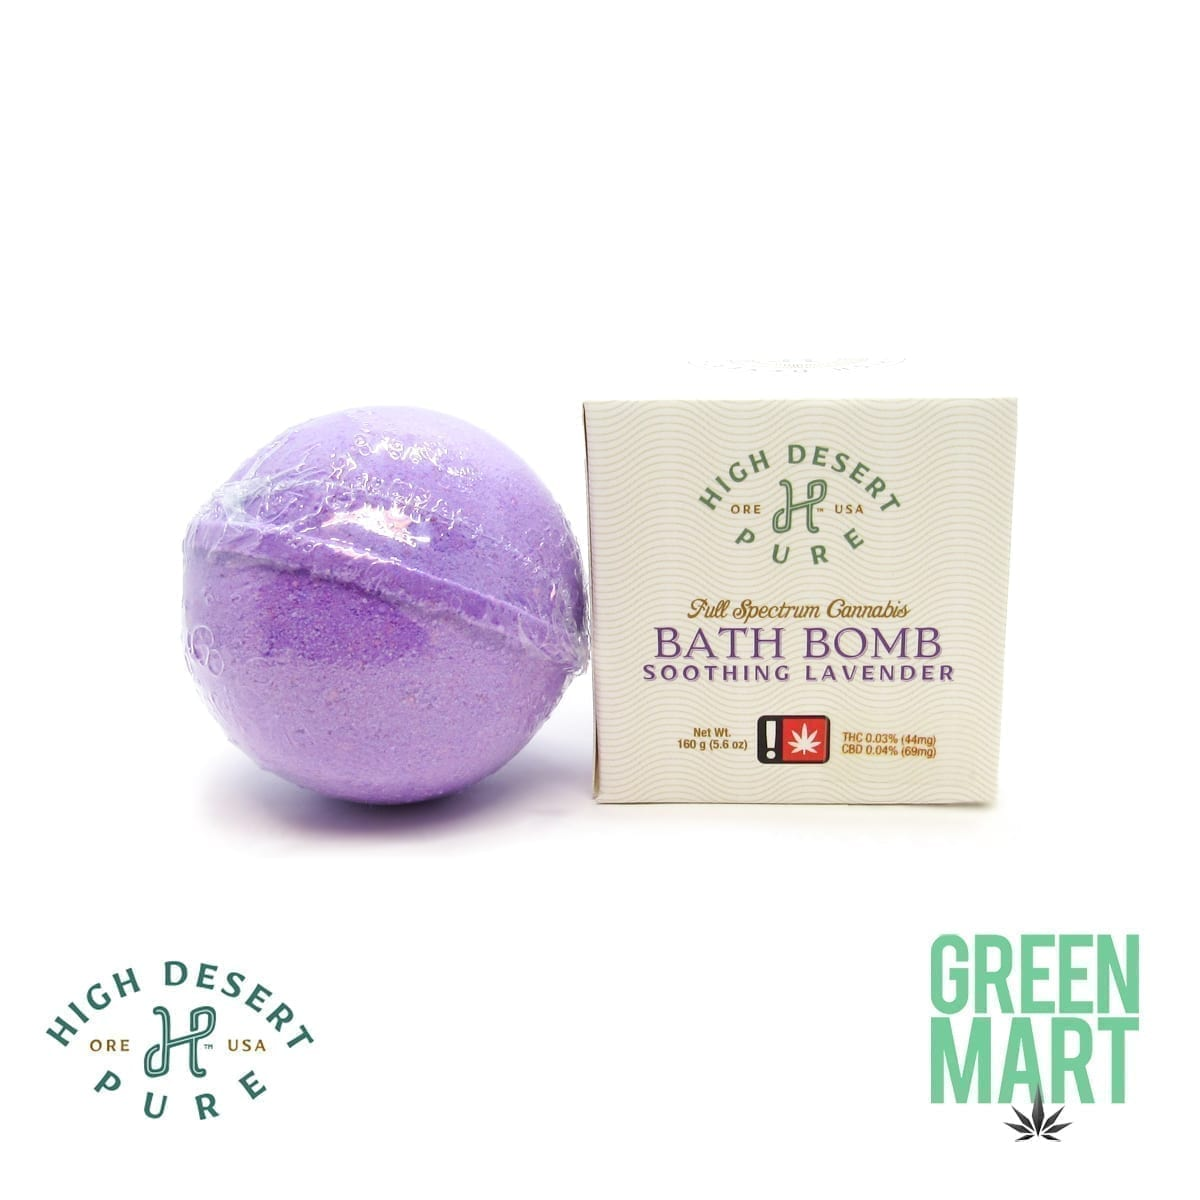 High Desert Pure - Bath Bomb - Soothing Lavender